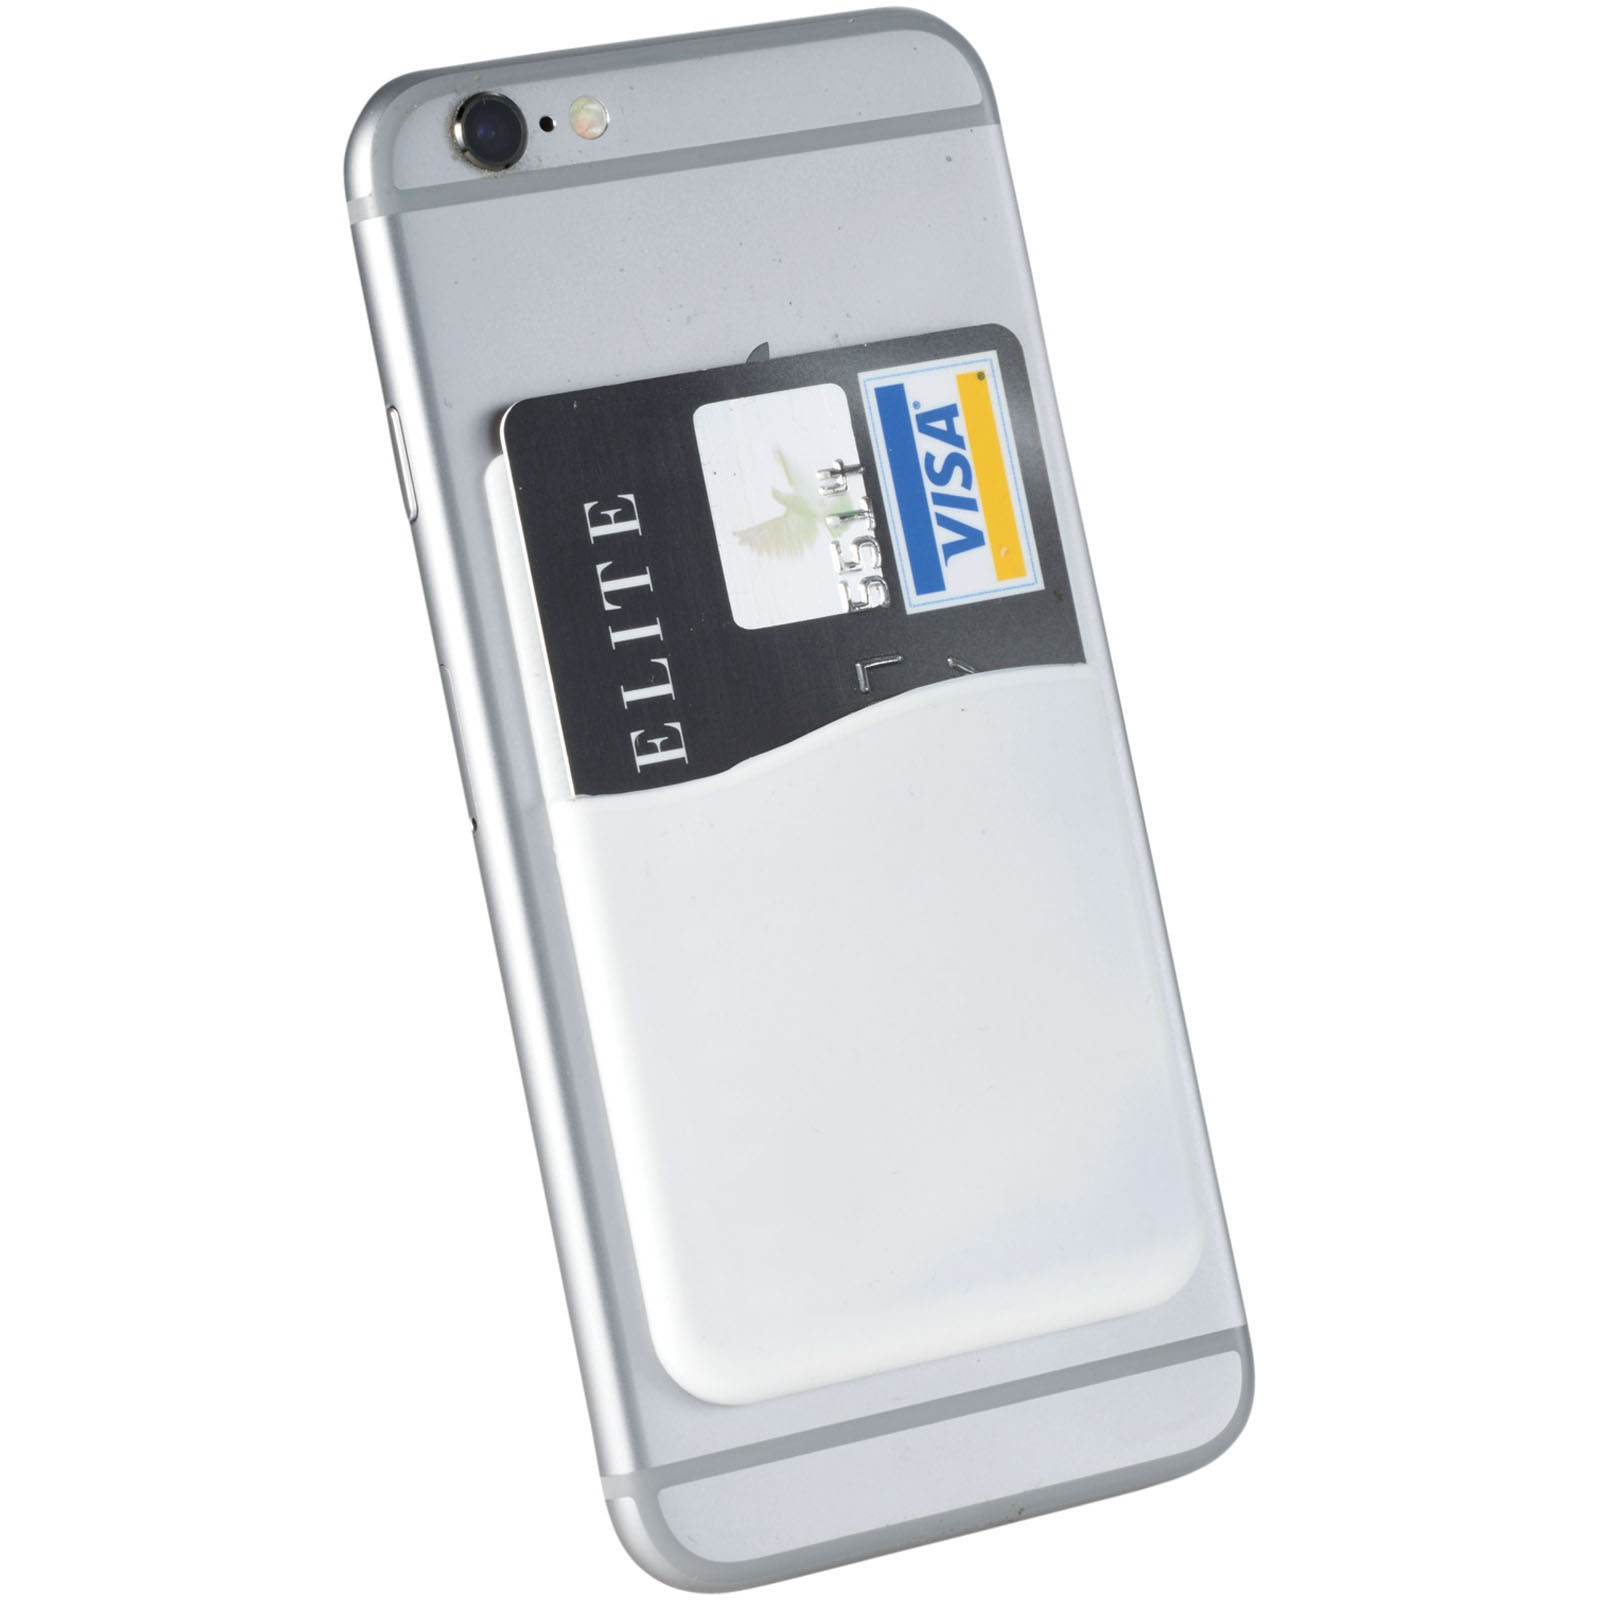 Slim card wallet accessory for smartphones - White